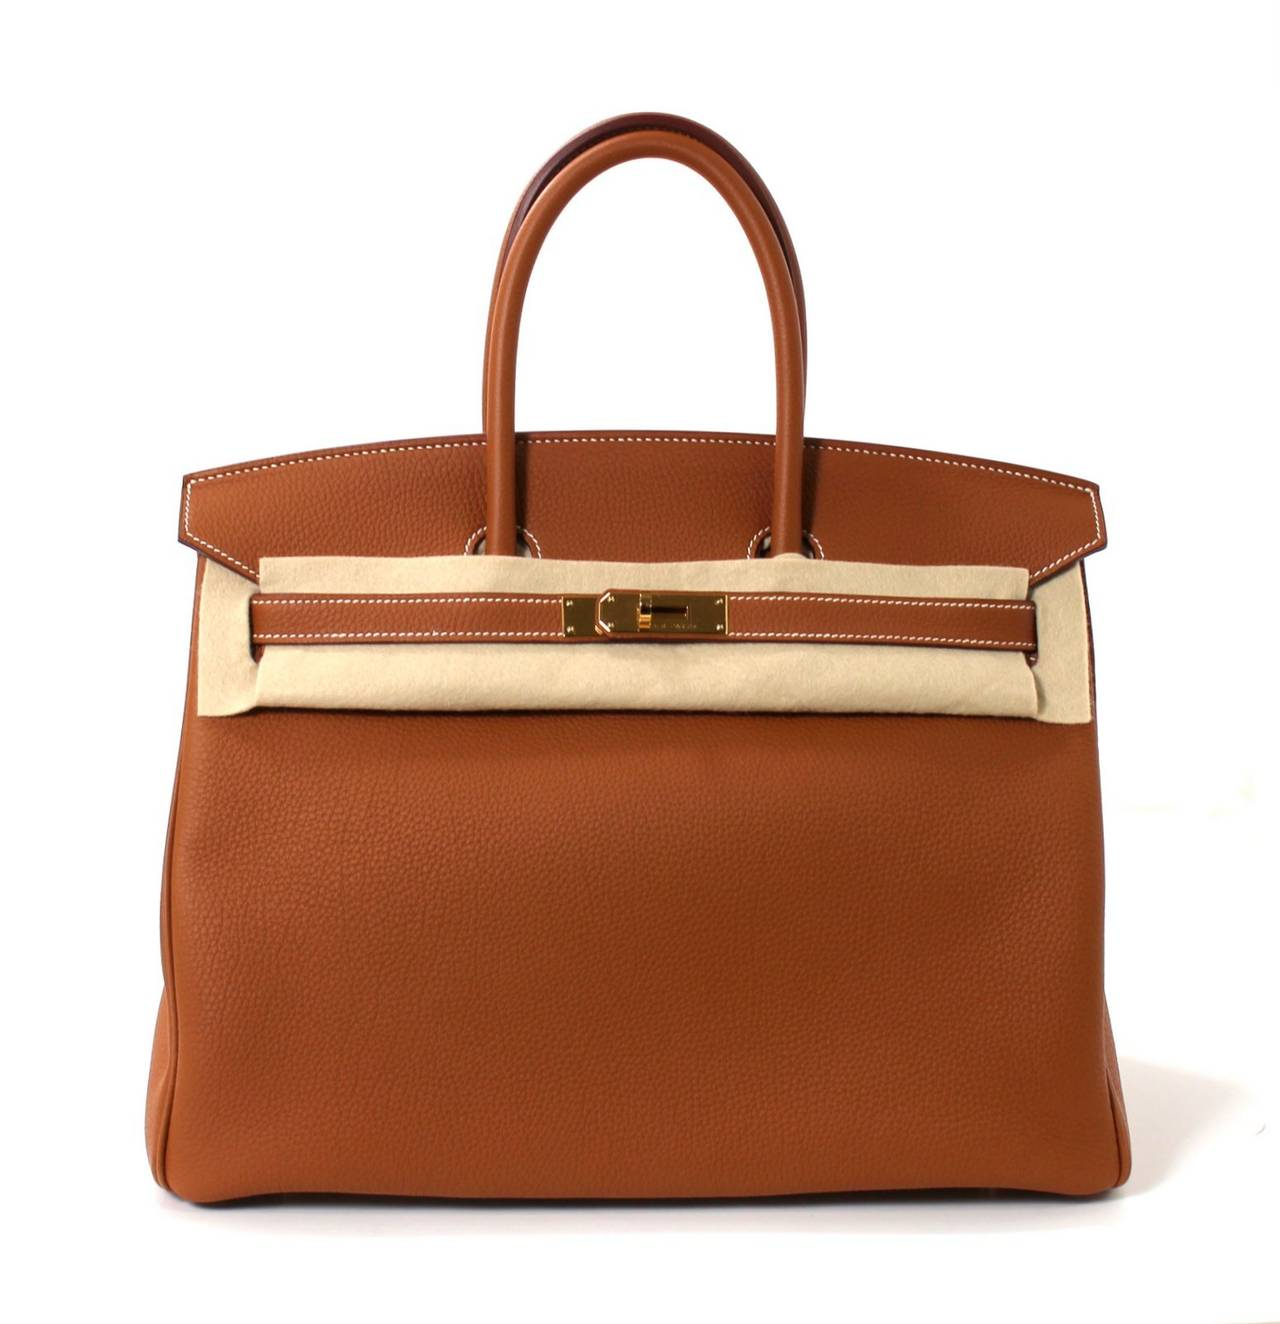 Hermes Classic Gold 35 cm Birkin Bag- Togo with GHW 9